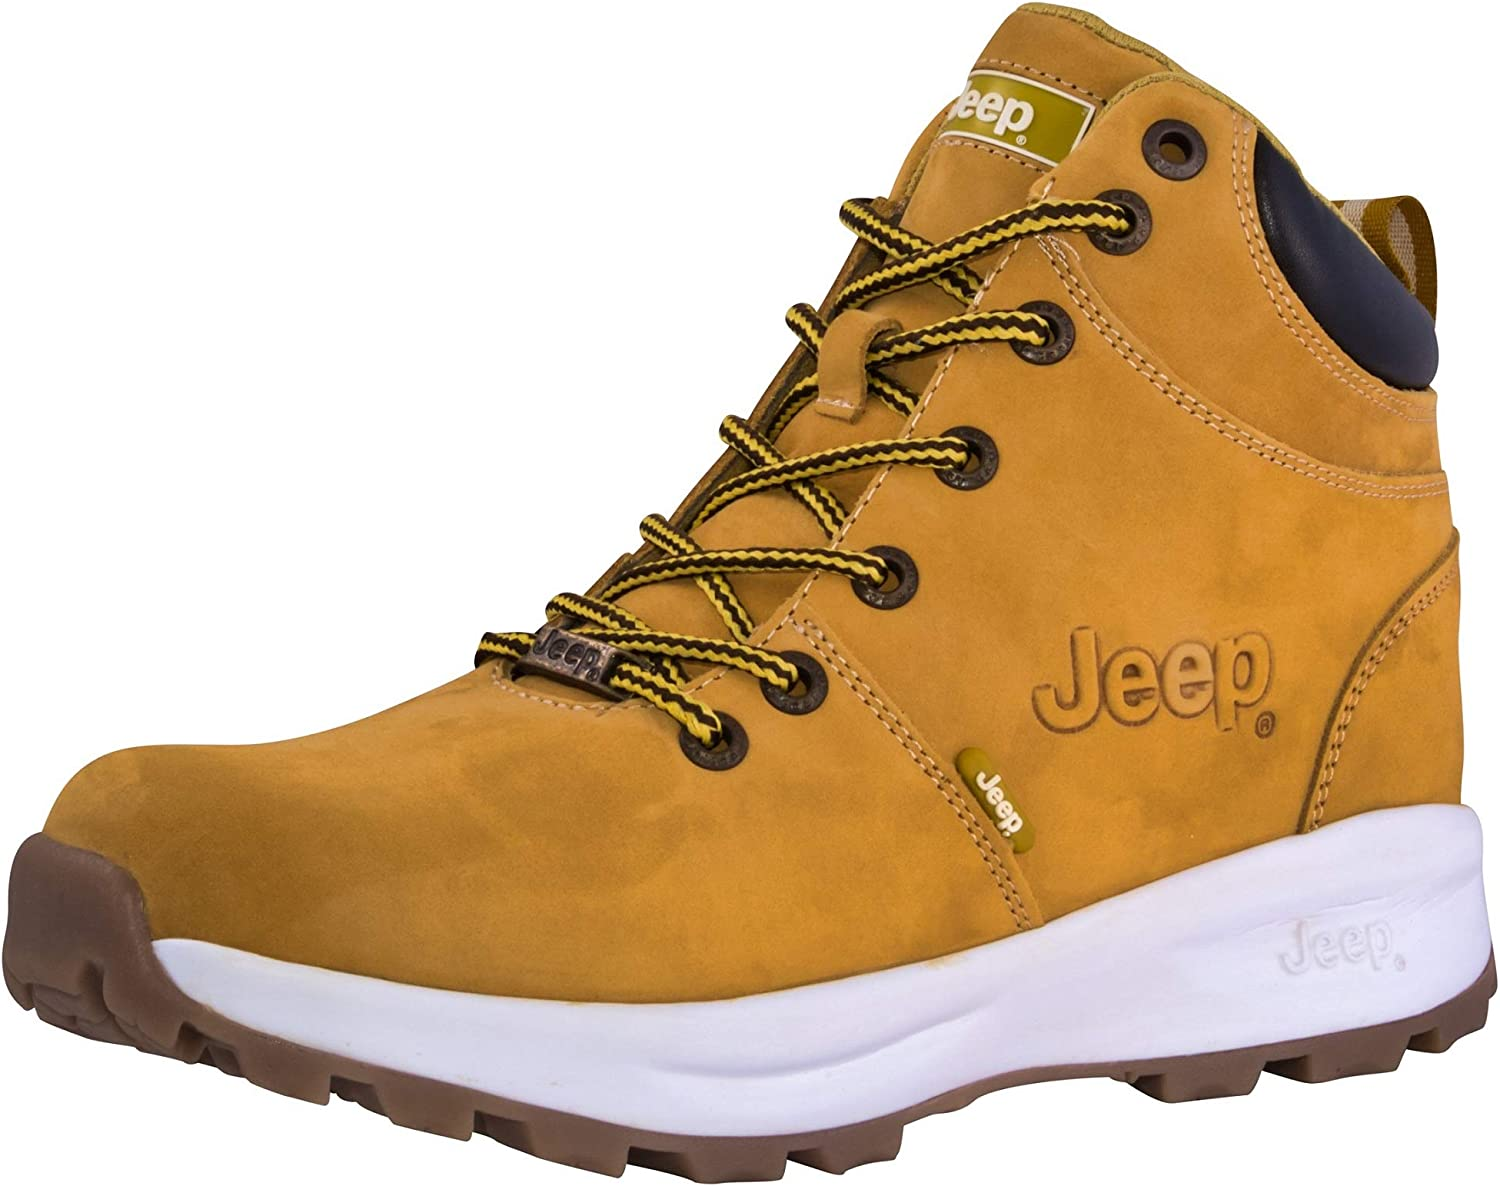 Jeep Men s Yellow Boots Hiking Ankle High Leather Shoes